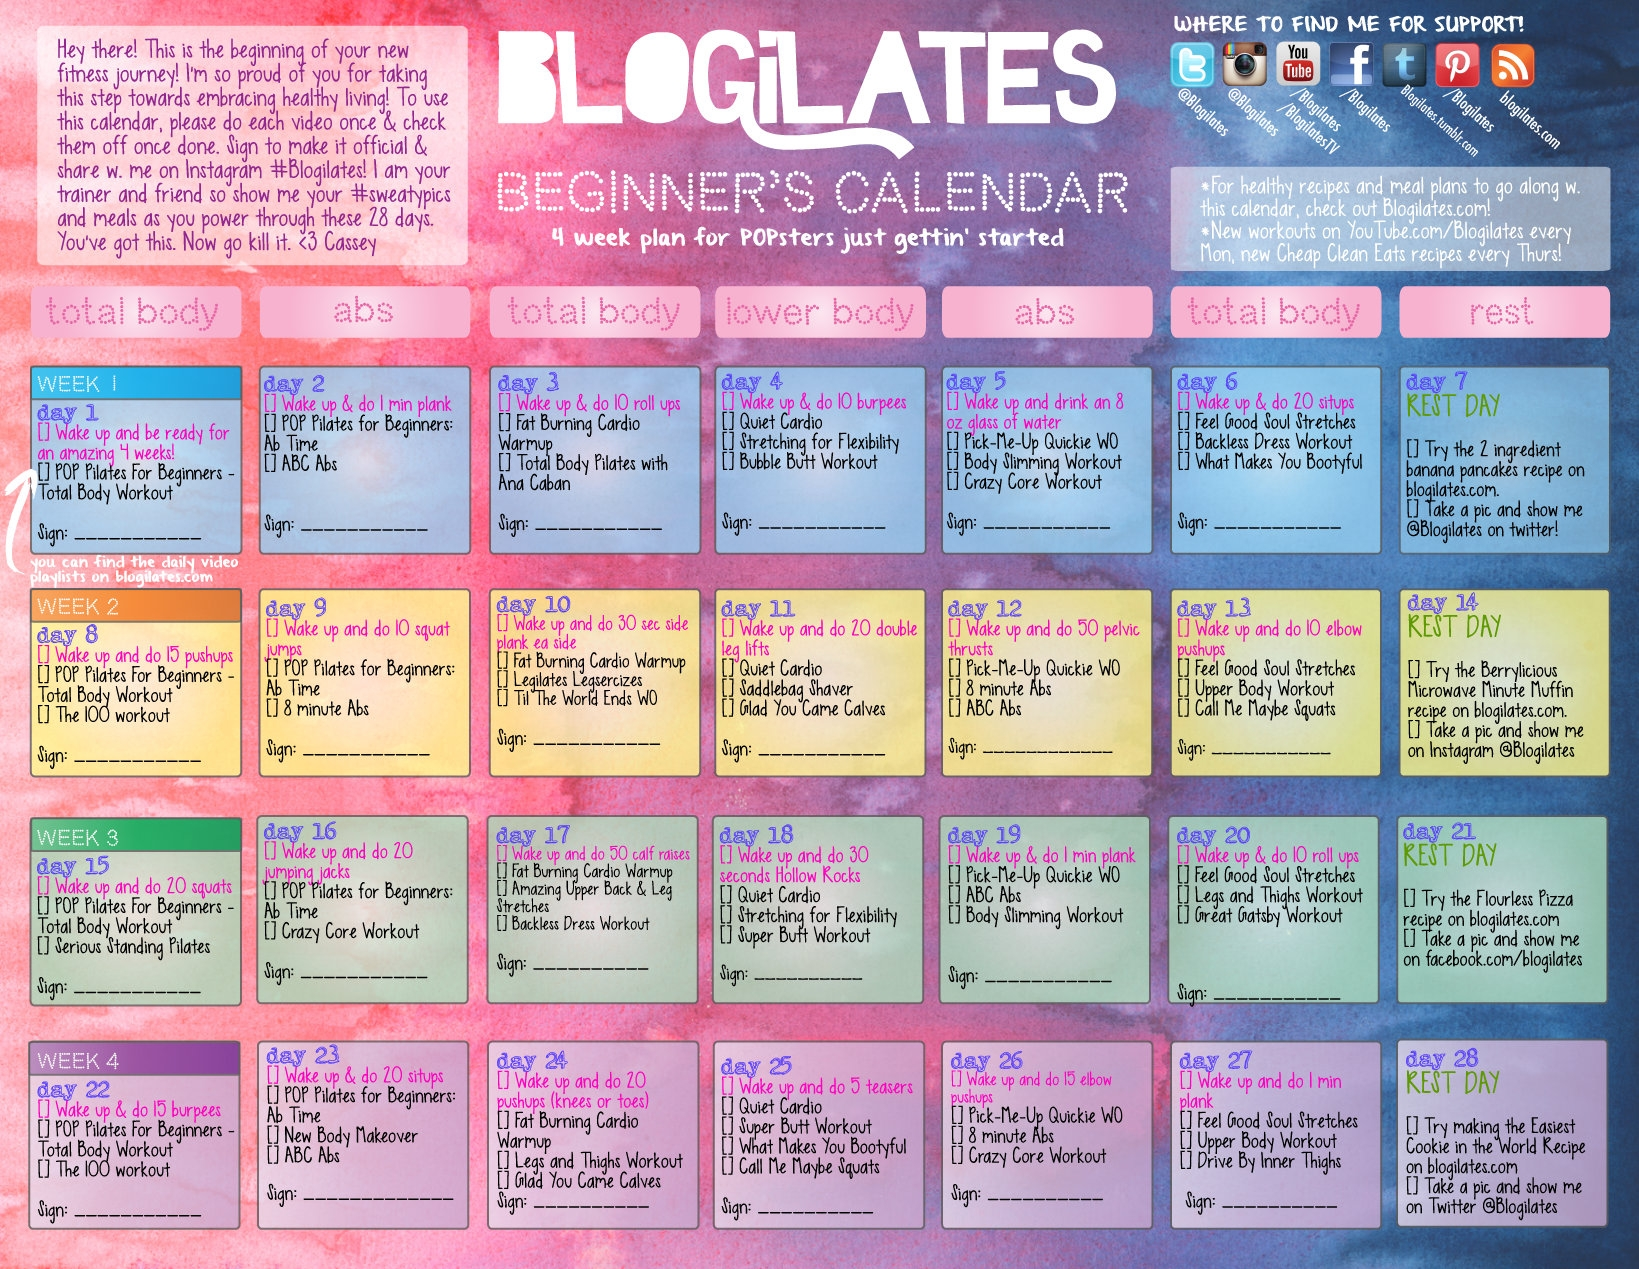 Pop Pilates For Beginners Calendar Blogilates  Xjb